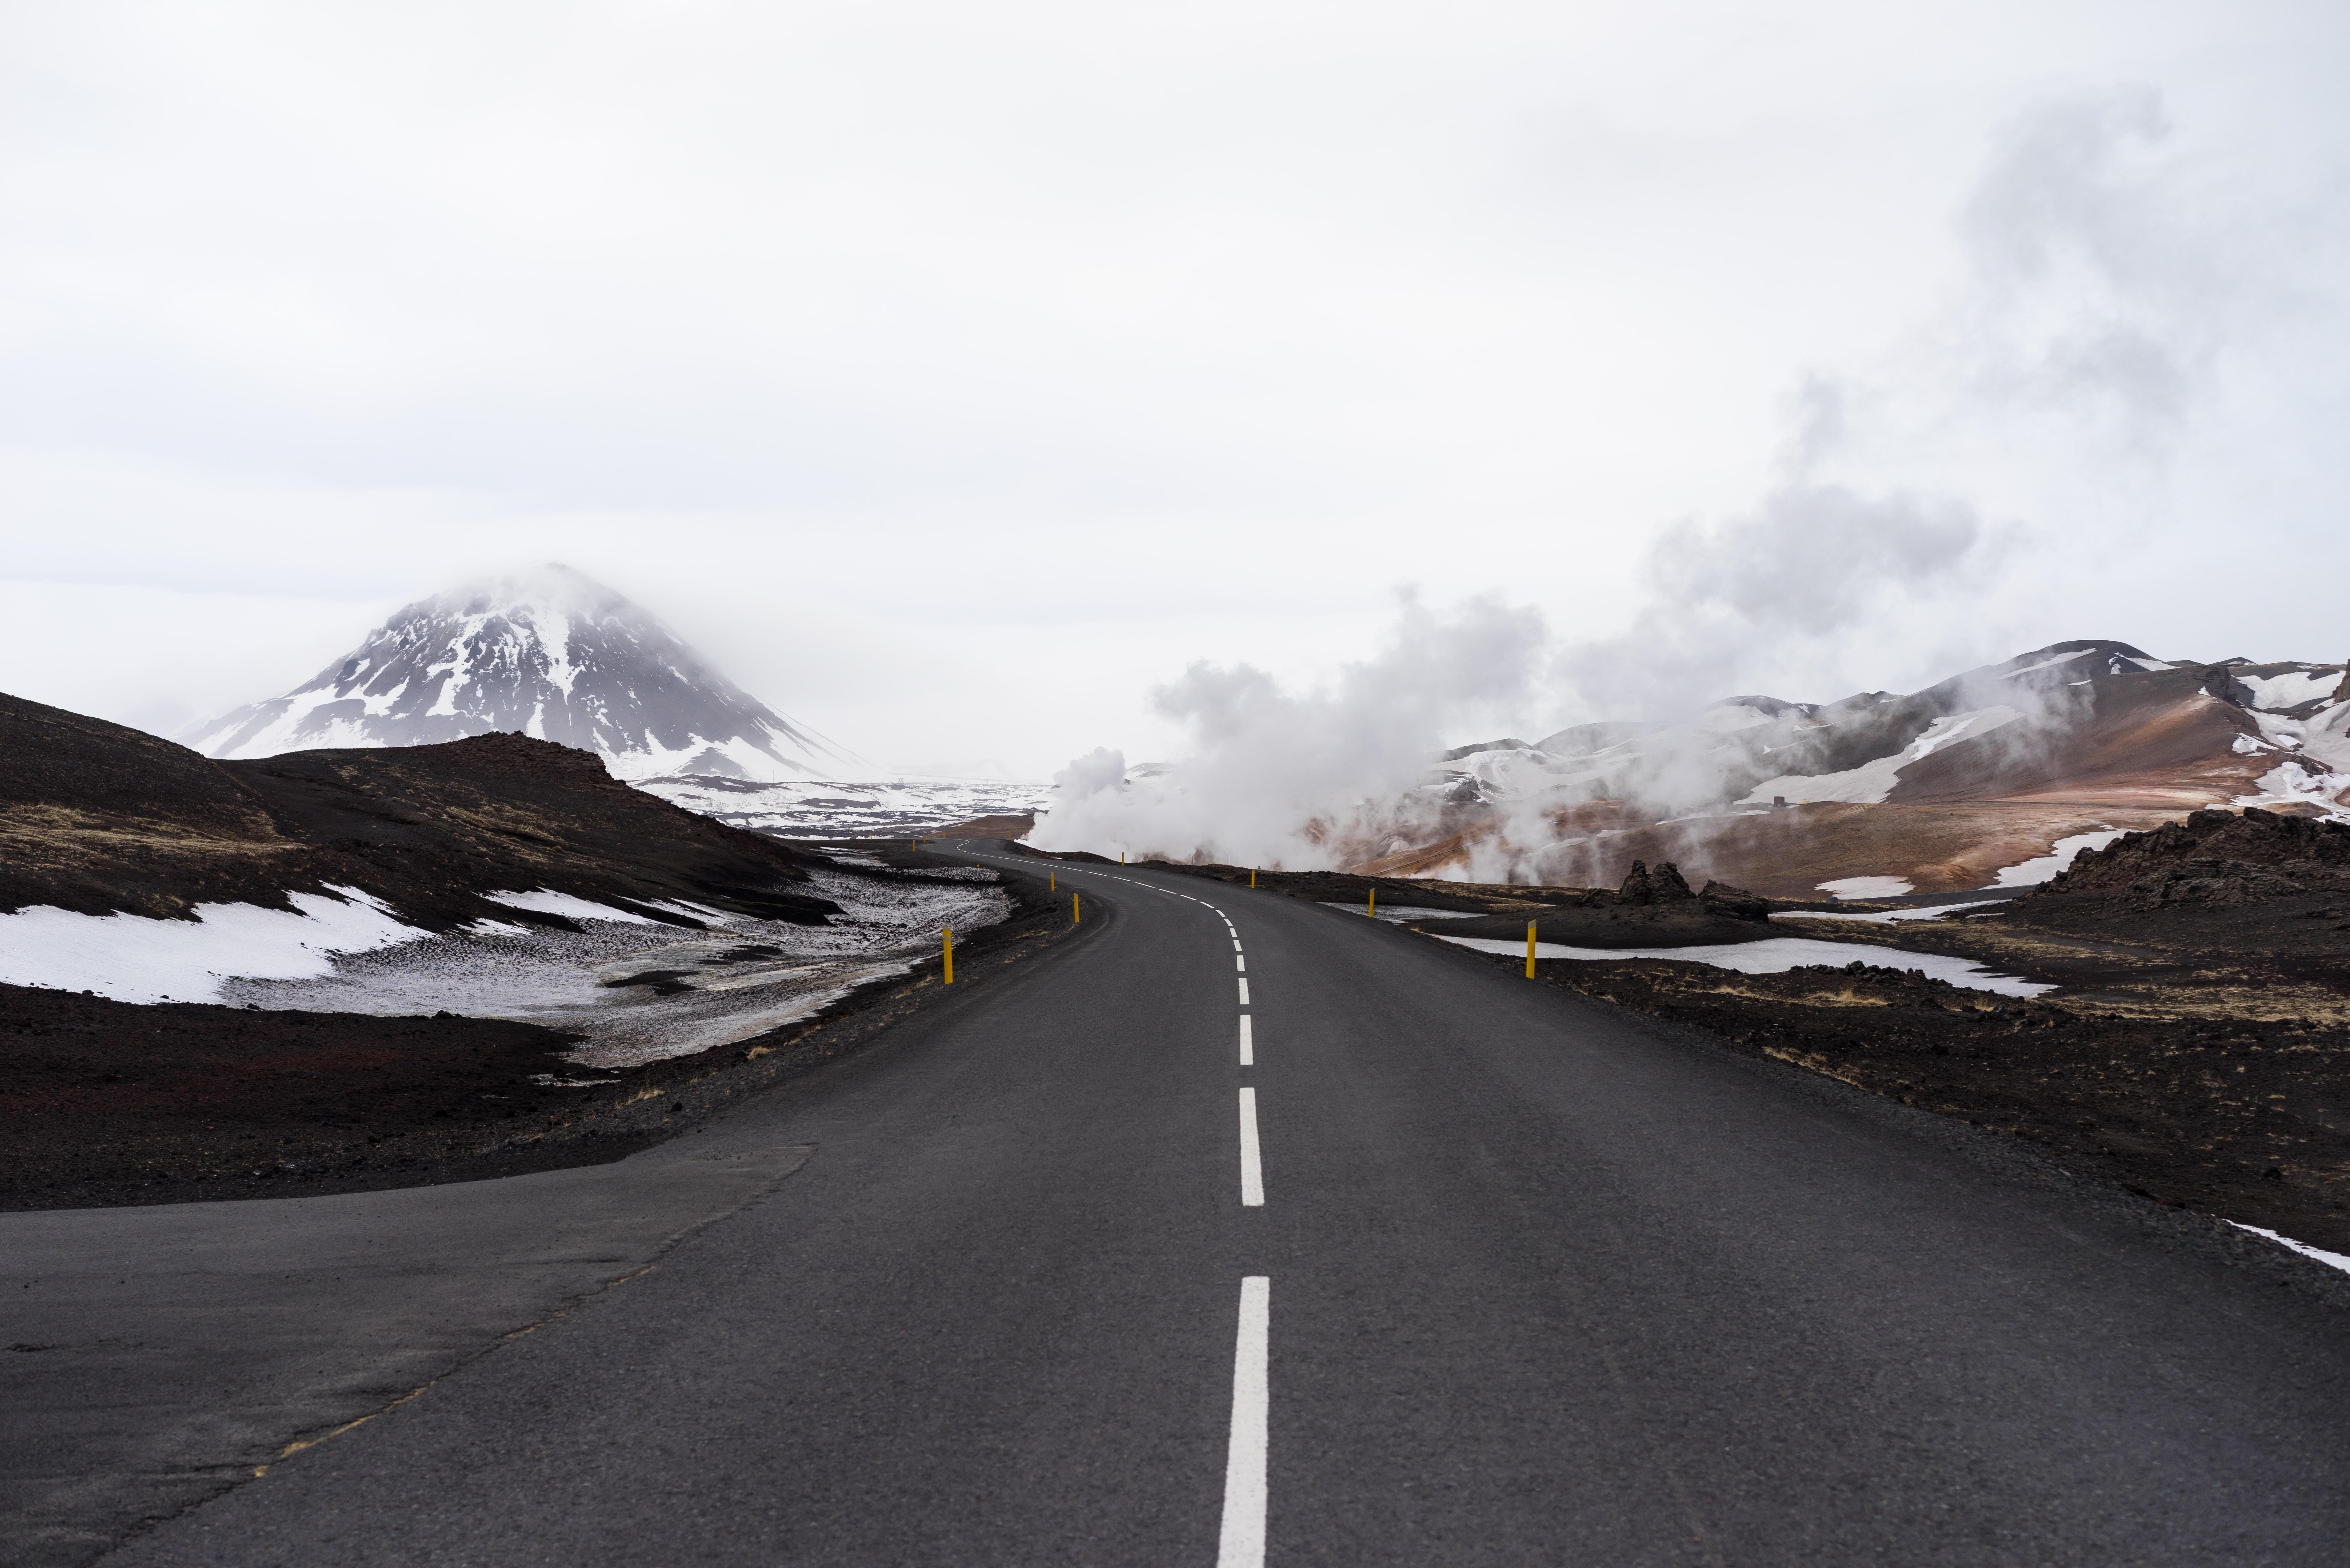 concrete road with snow-capped mountain at distance